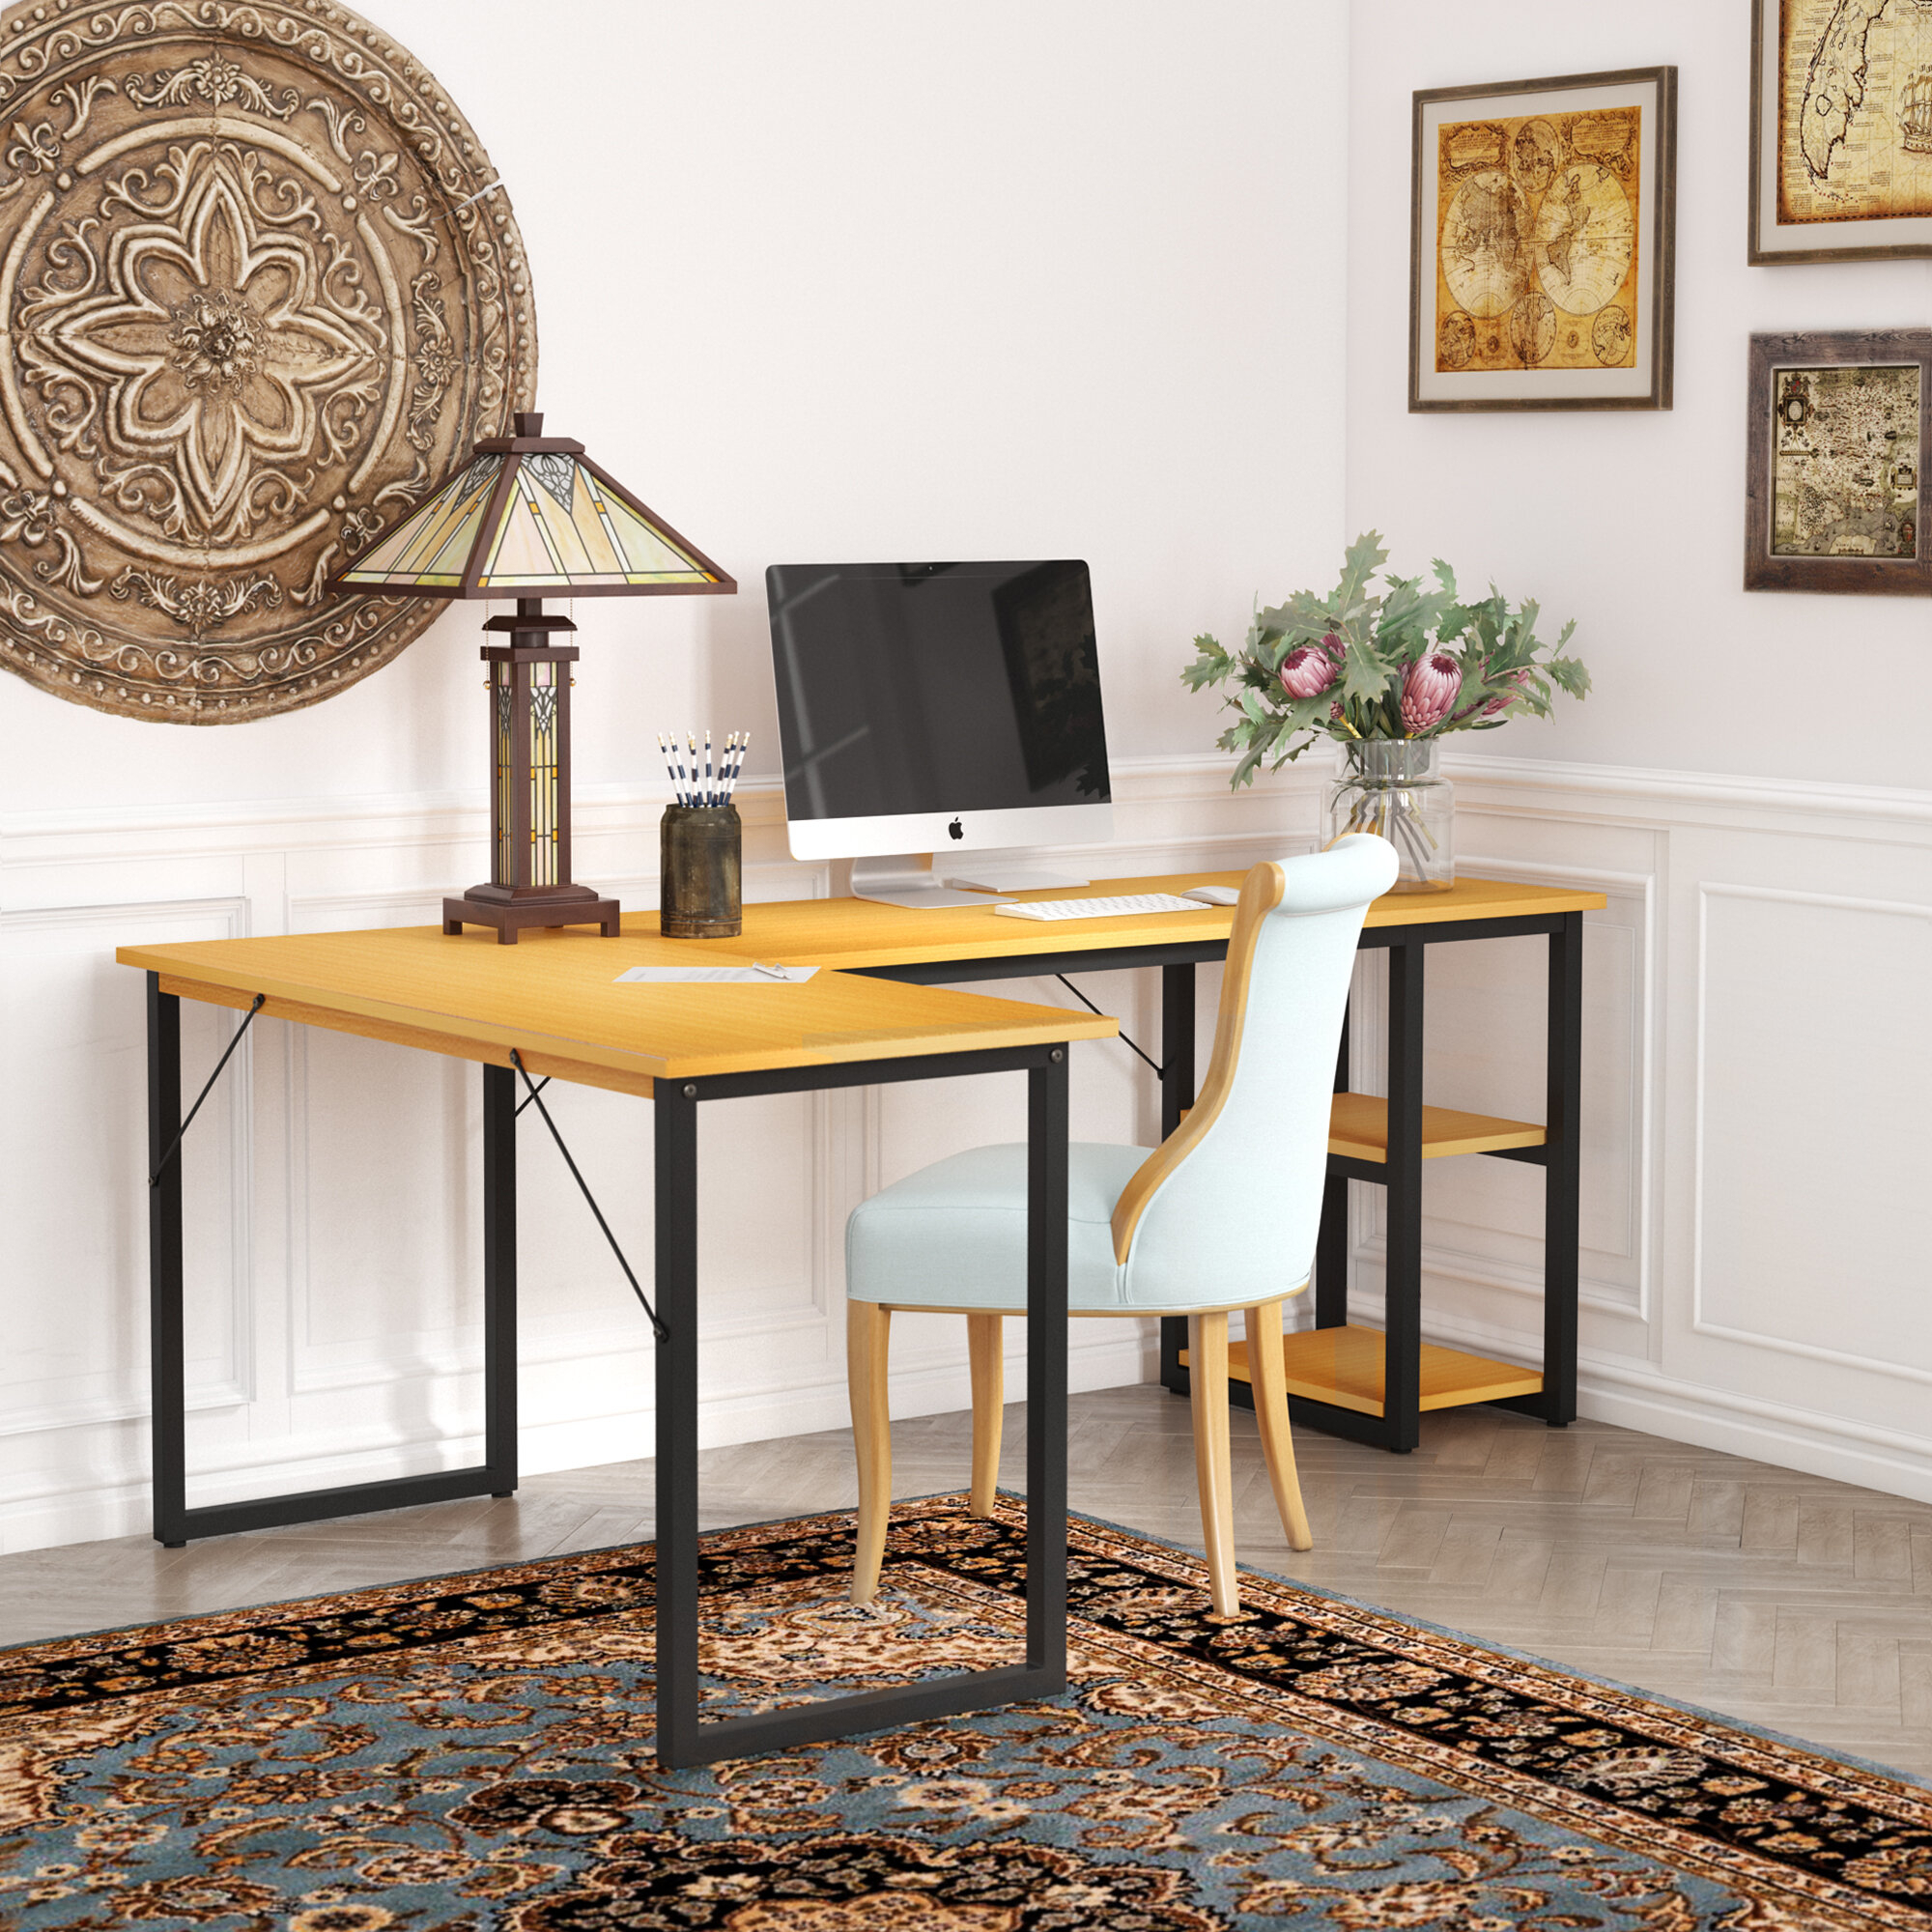 Caine Office L Shaped Credenza Desk In Caines Credenzas (View 8 of 30)